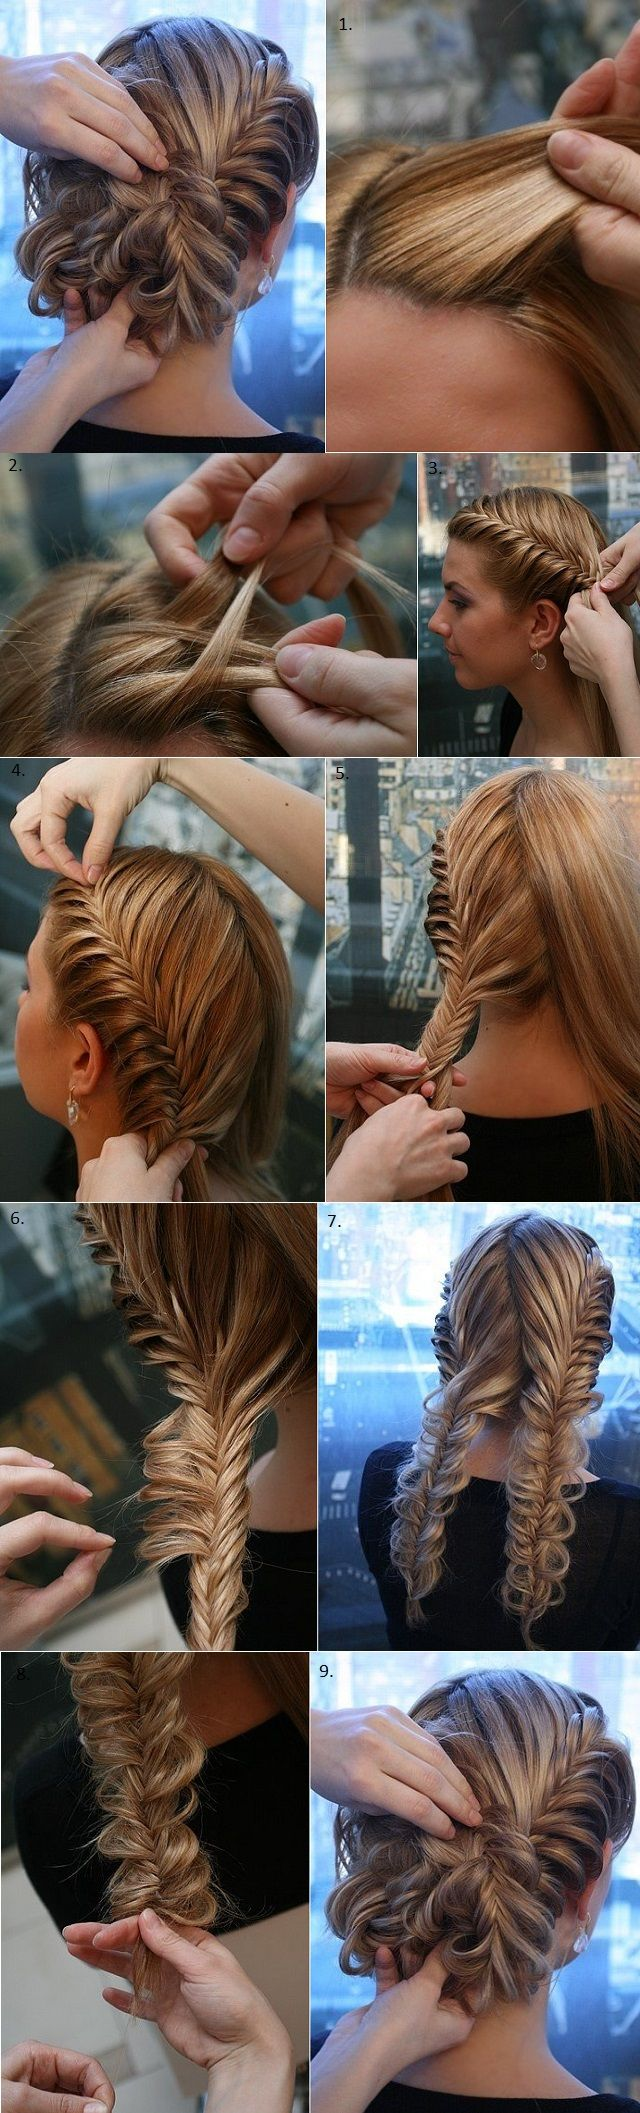 Amazing braided hairstyle fishtail updo vintage and fishtail